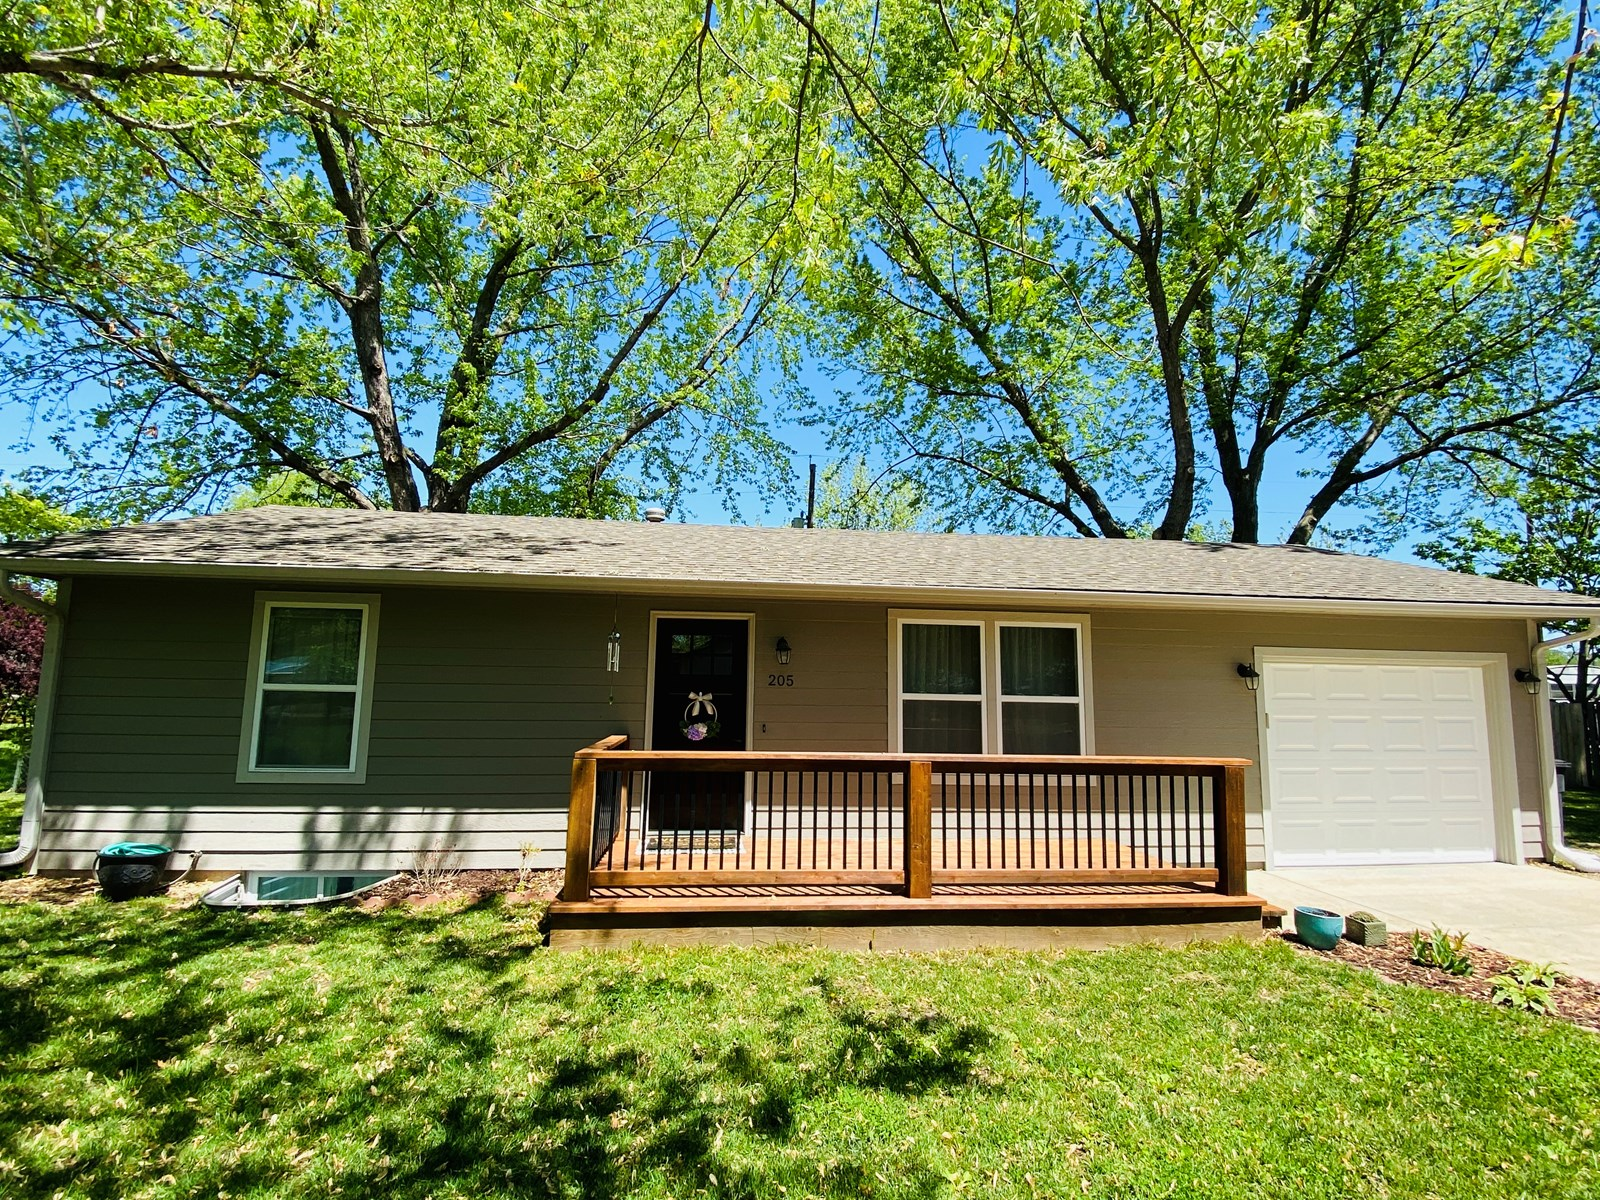 Home For Sale in Jefferson County- Perry Kansas